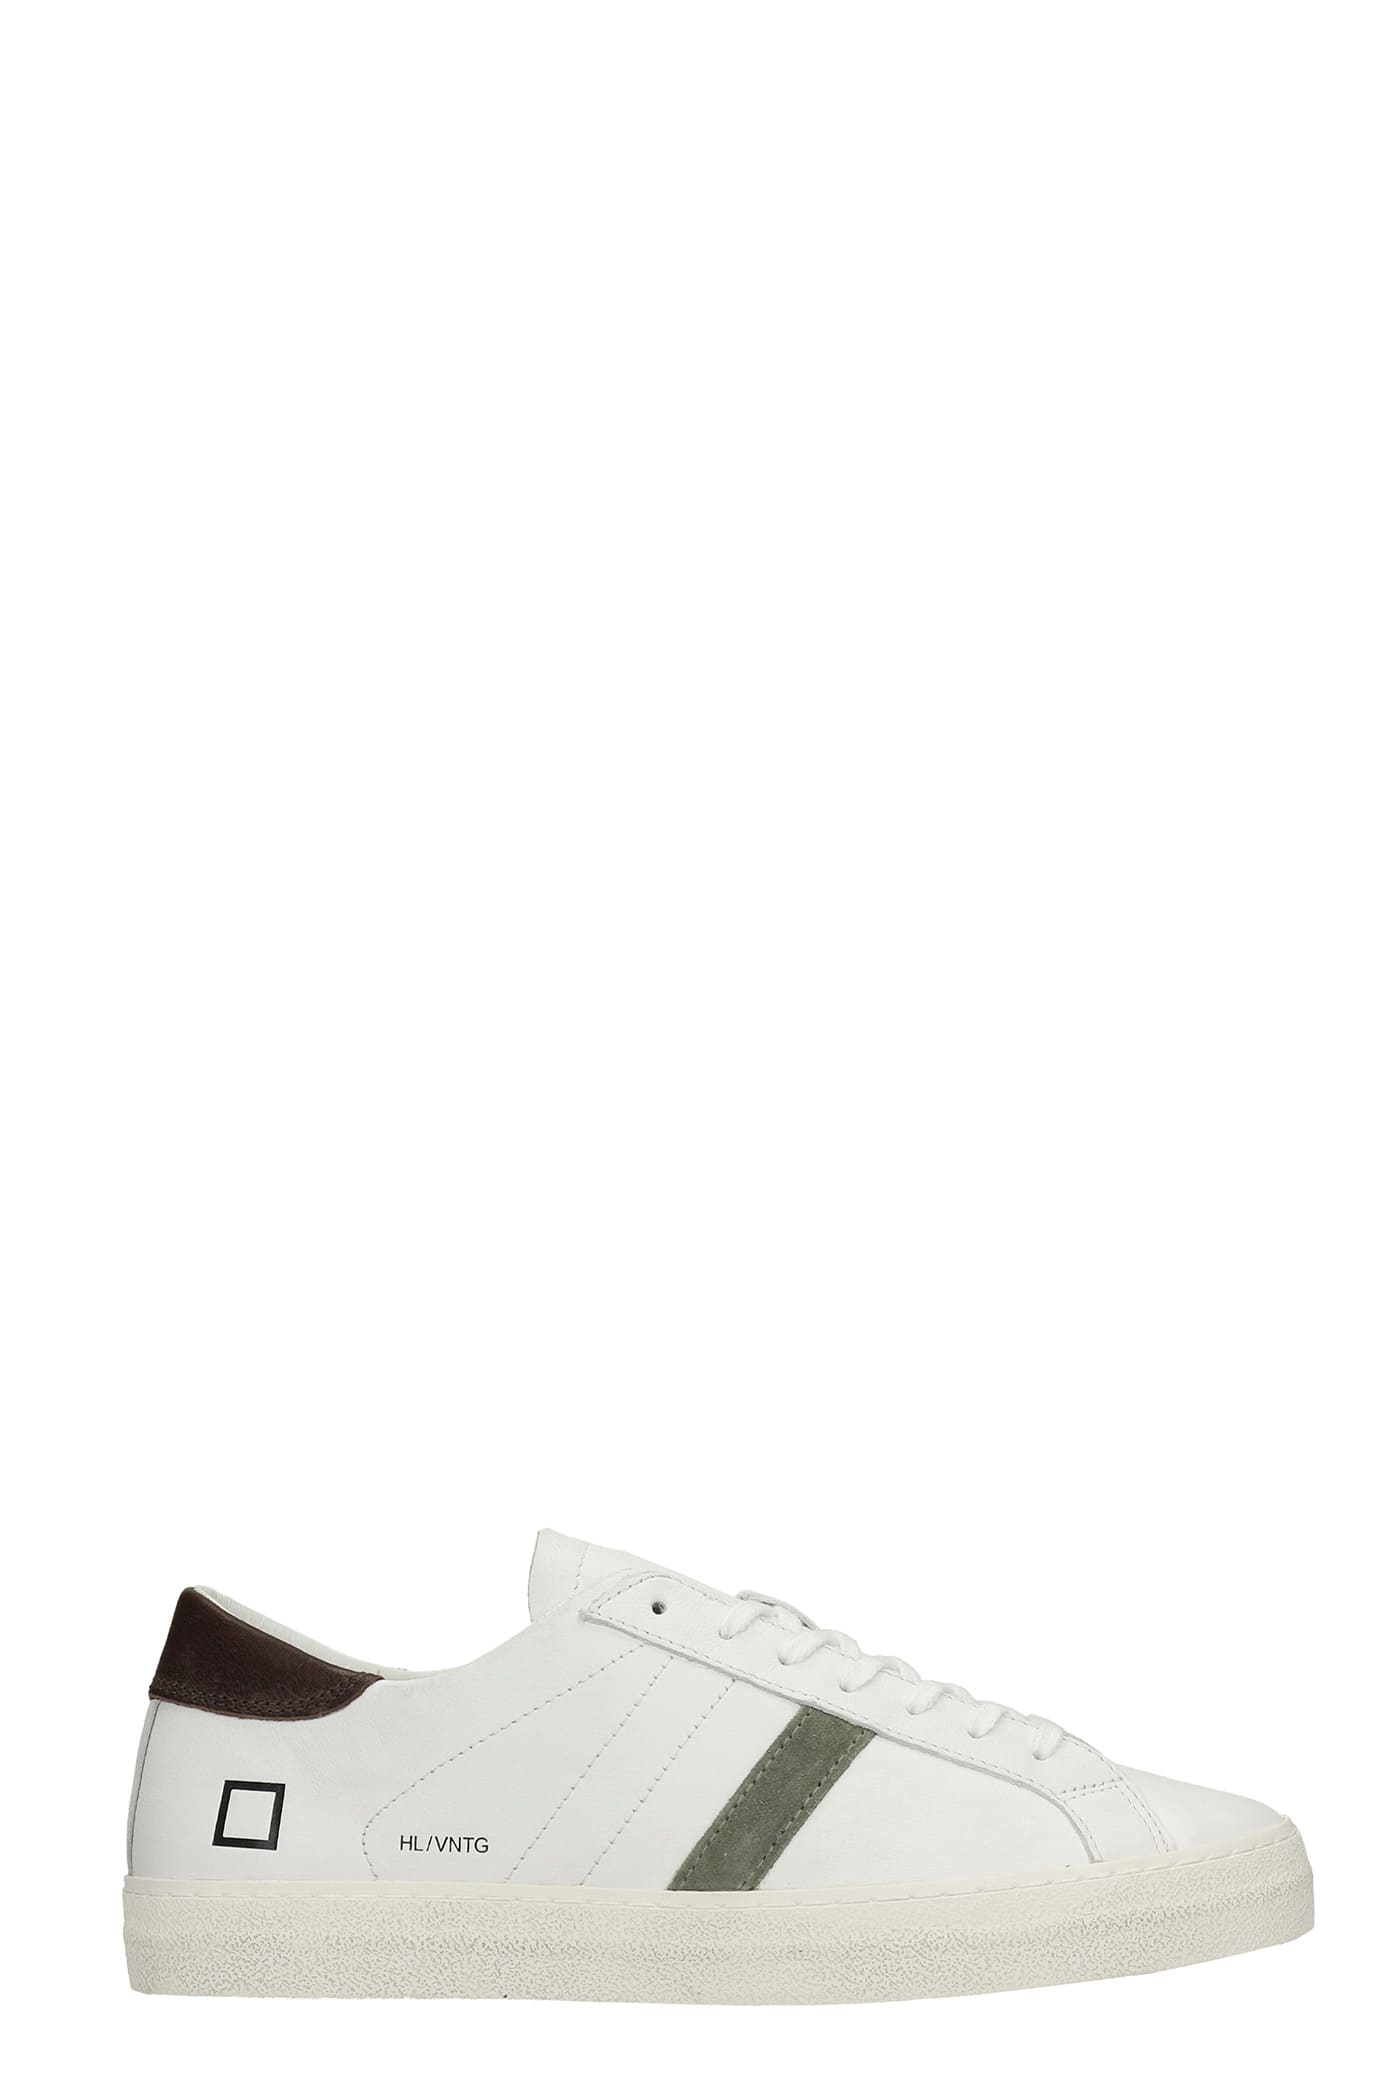 Hill Low Sneakers In White Leather